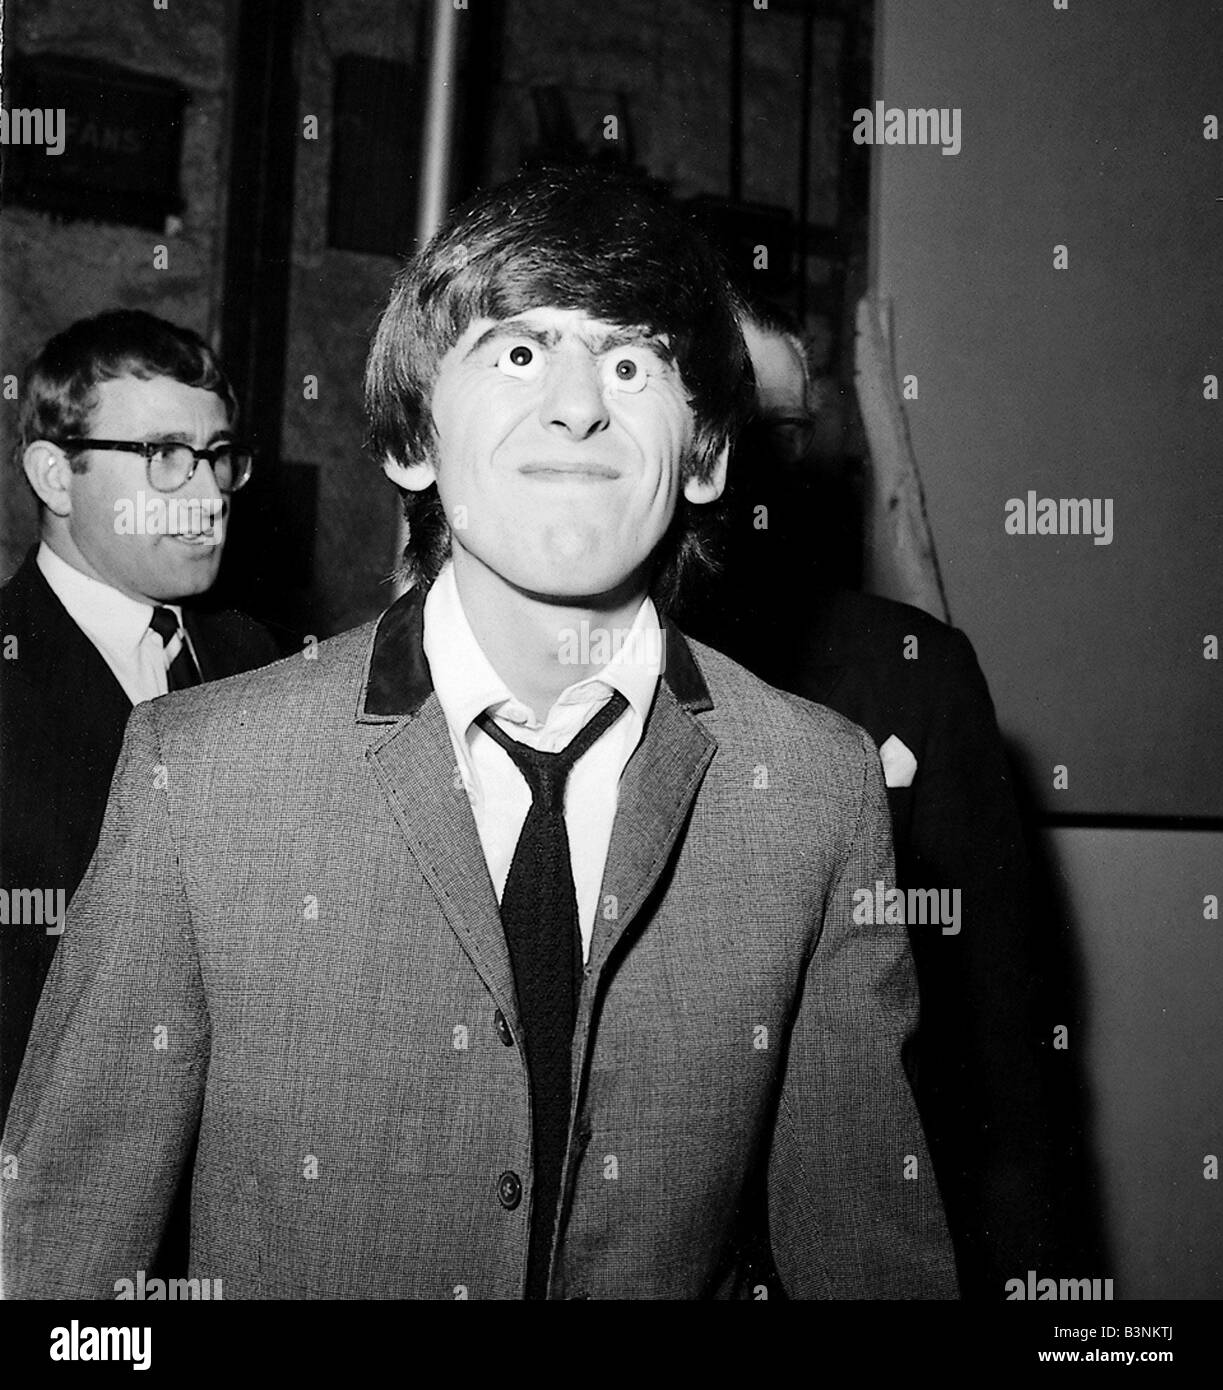 Beatles 1964 George Harrison Tries Out Glass Eyes On The Set Of A Hard Days Night March